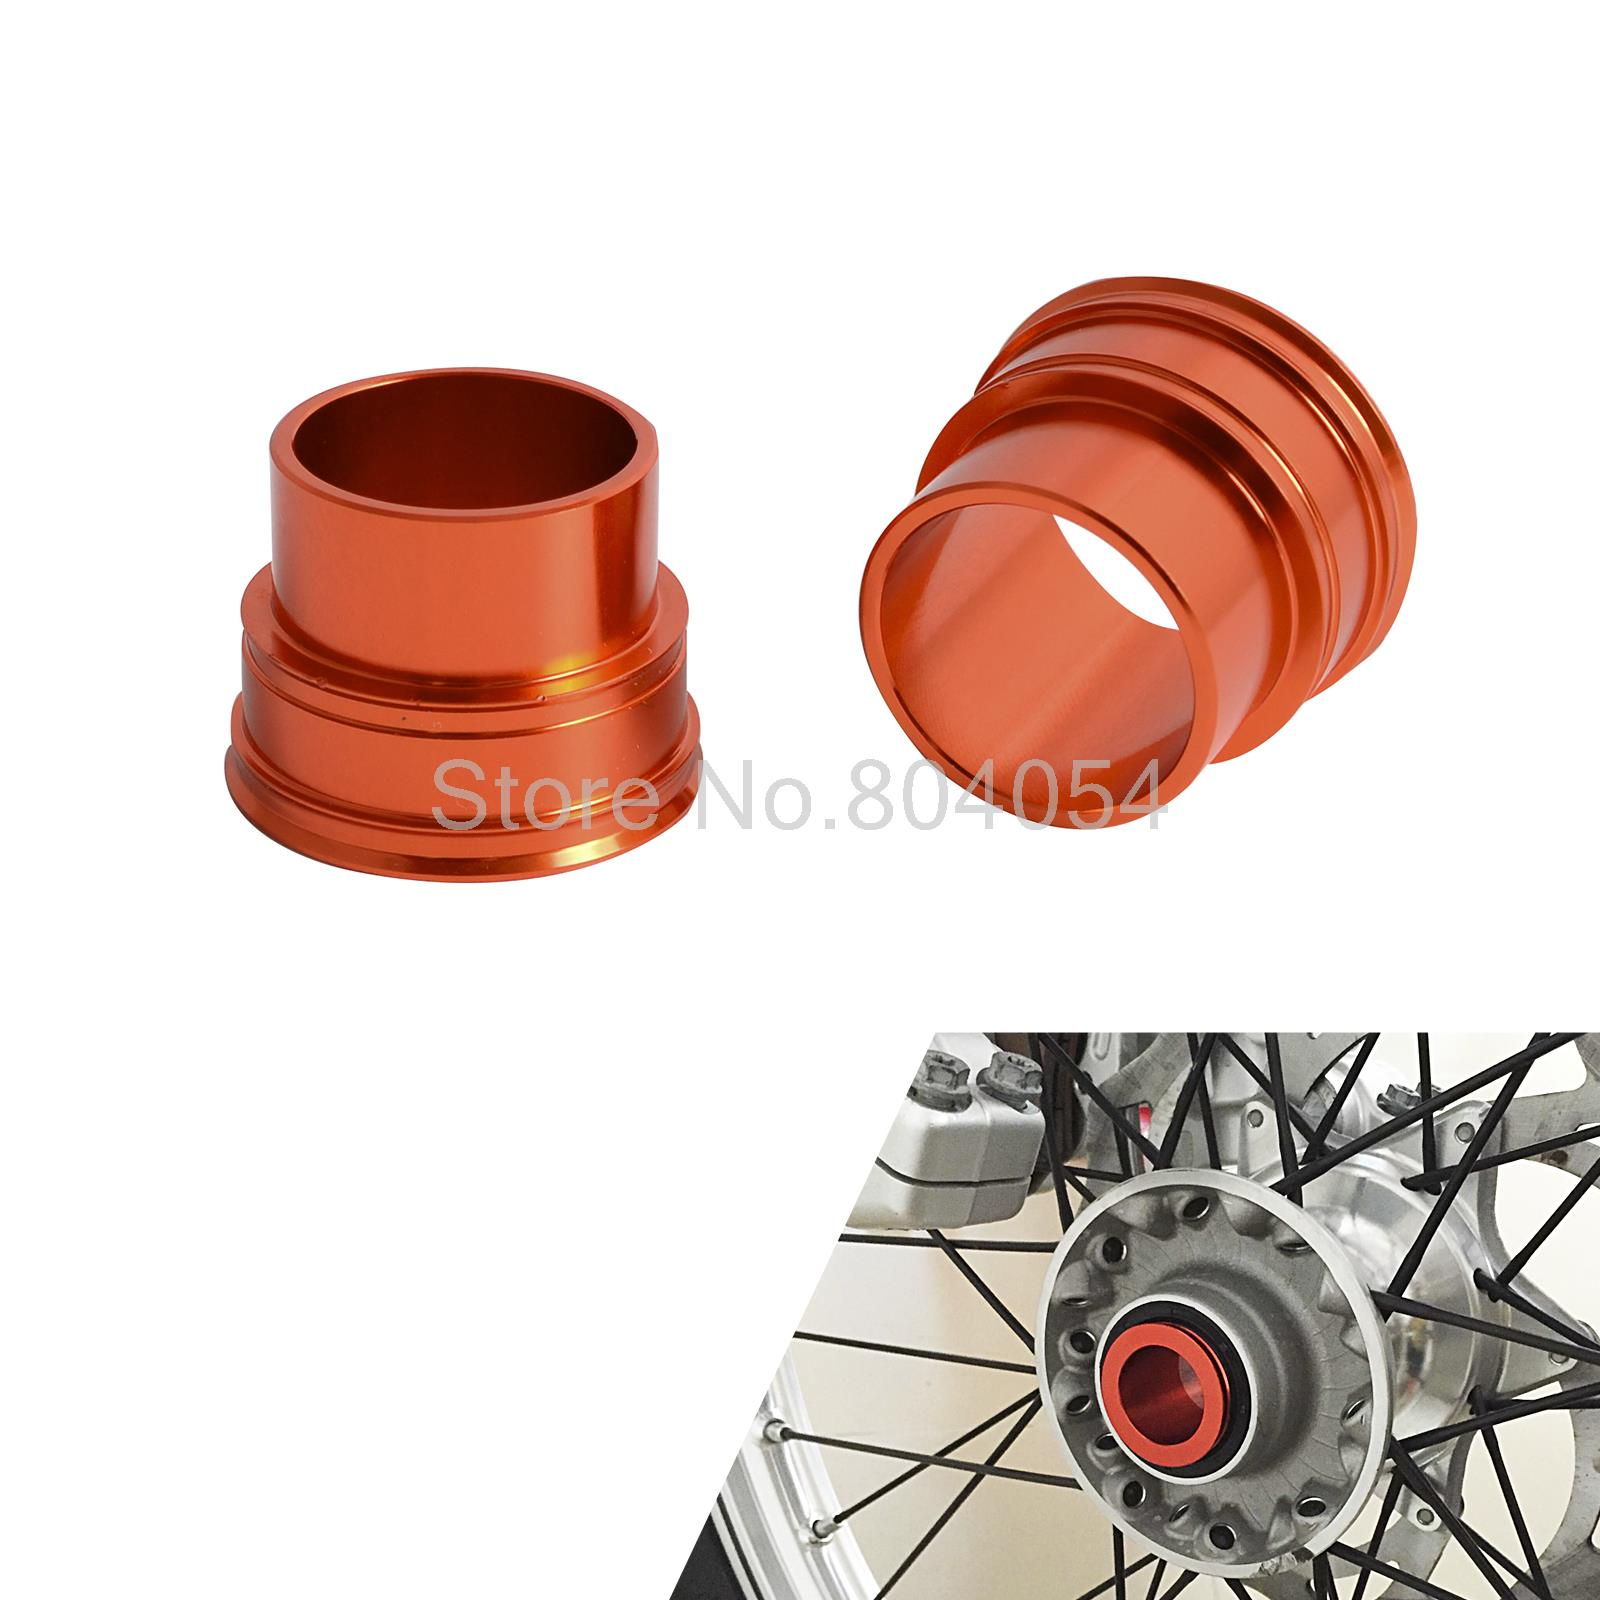 CNC Billet Aluminum Front Wheel Hub Spacers Collars For KTM 125 200 250 300 350 400 450 525 530 SX SXF XCF EXC EXC-F EXC-W XCW orange cnc billet factory oil filter cover for ktm sx exc xc f xcf w 250 400 450 520 525 540 950 990